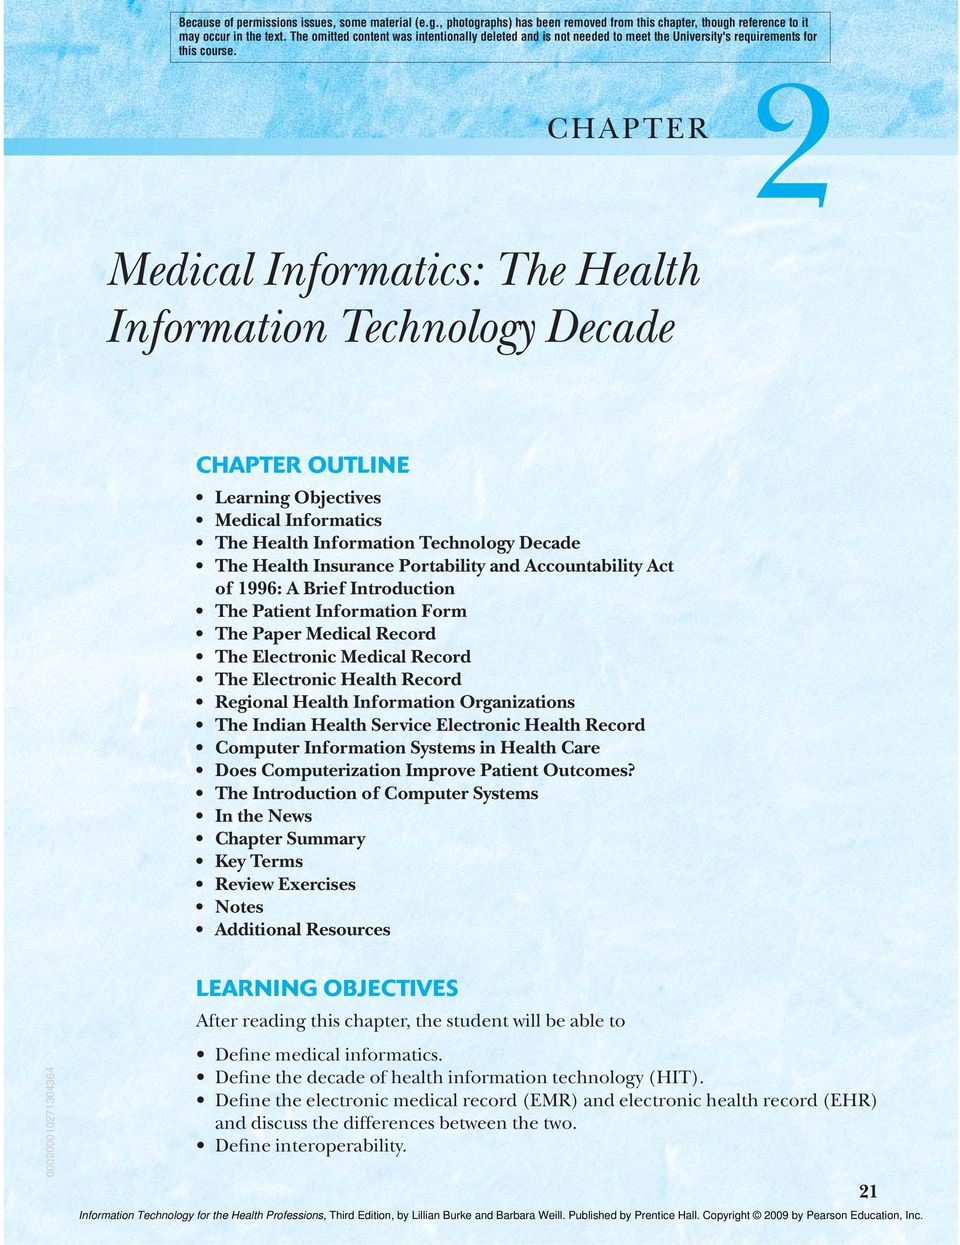 CHAPTER 2 Medical Informatics: The Health Information Technology Decade CHAPTER OUTLINE Learning Objectives Medical Informatics The Health Information Technology Decade The Health Insurance